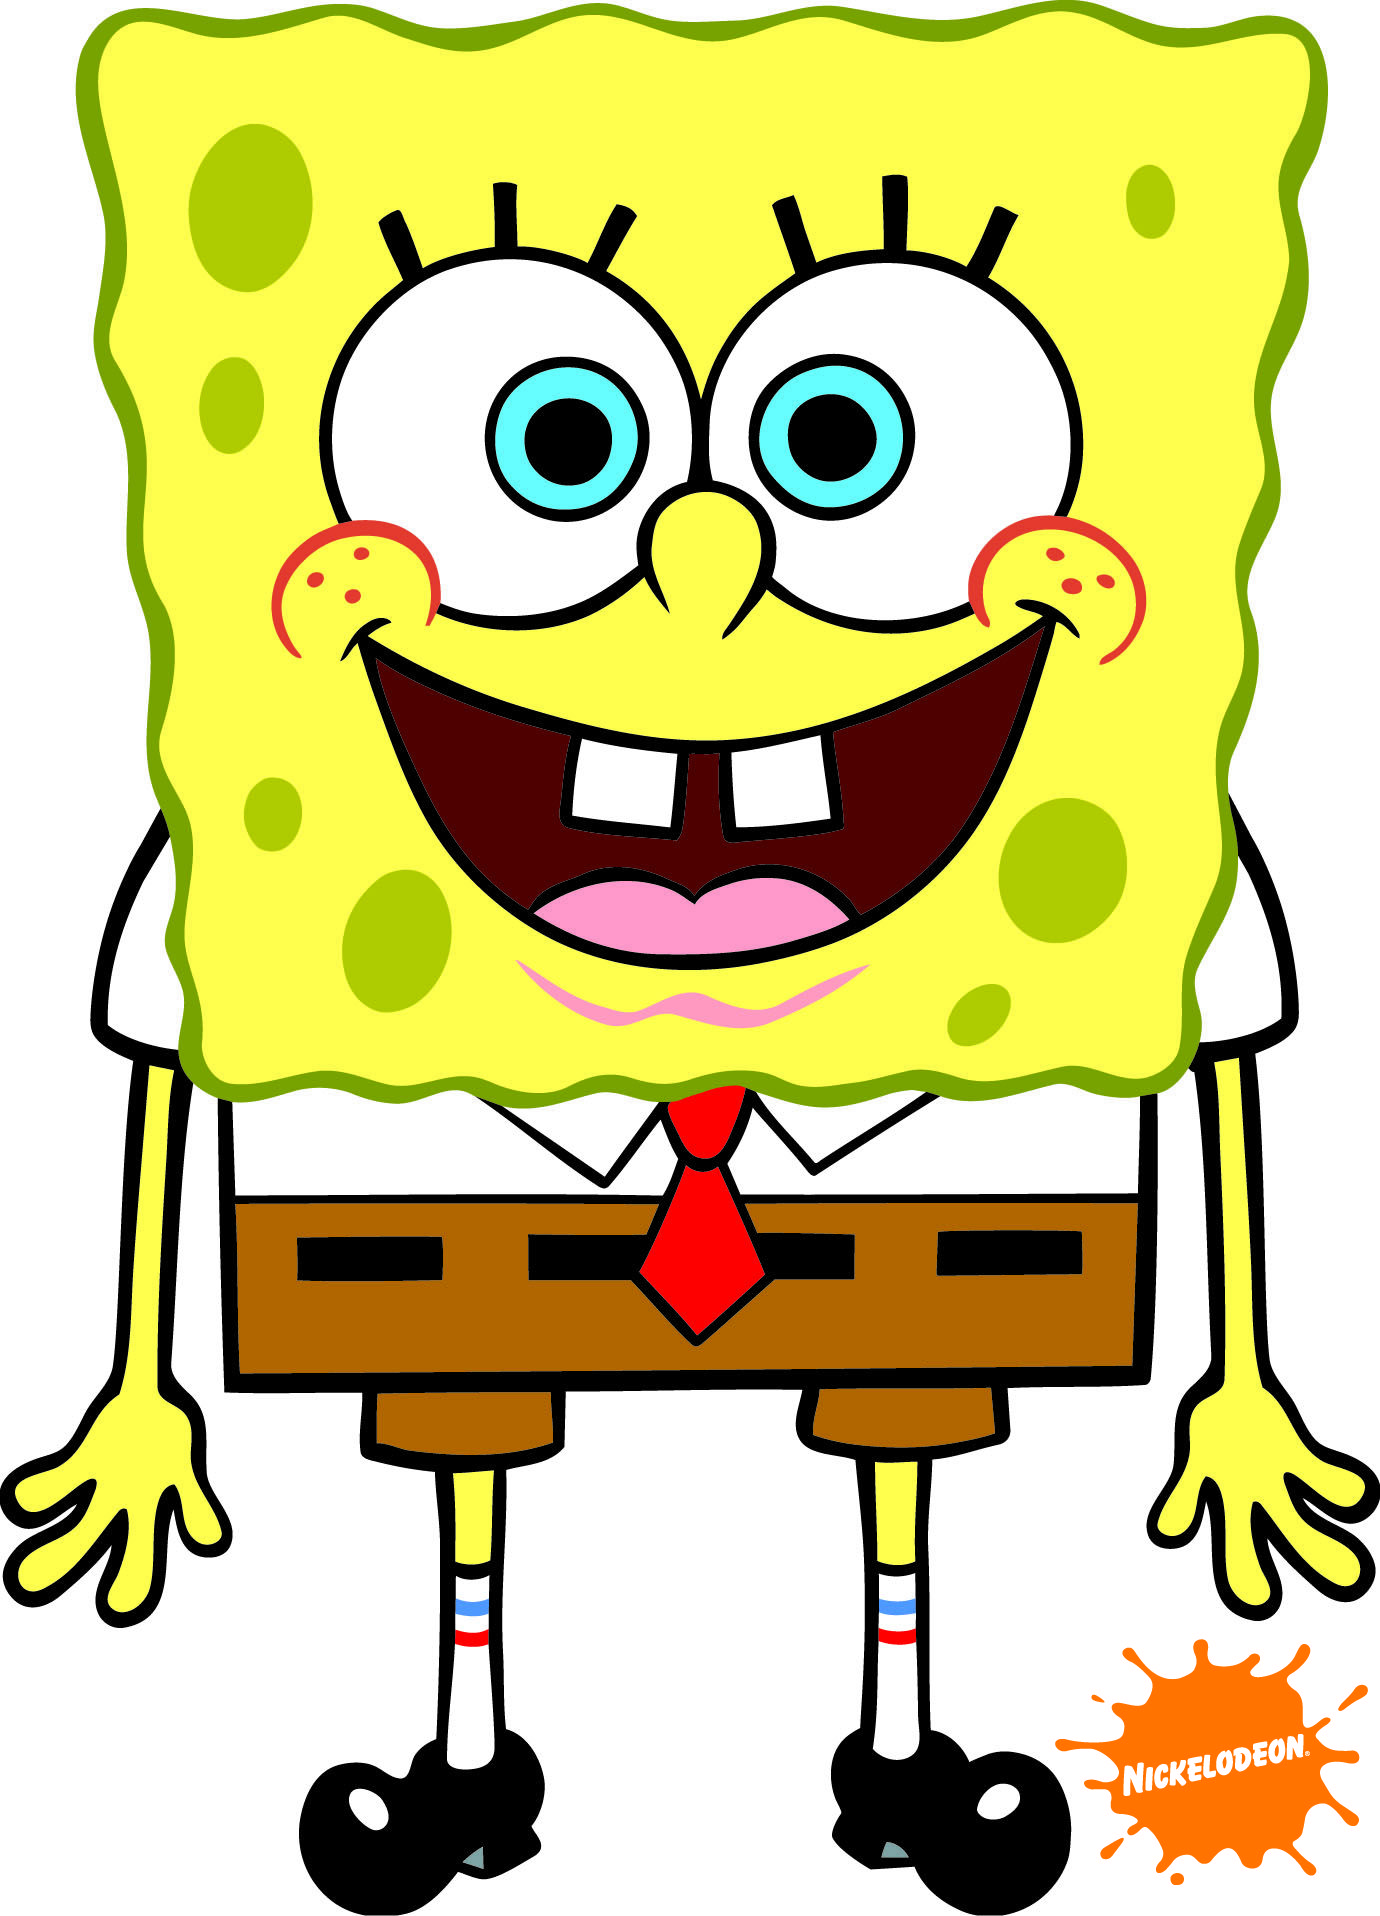 printable spongebob spongebob big small disguise emo sponge